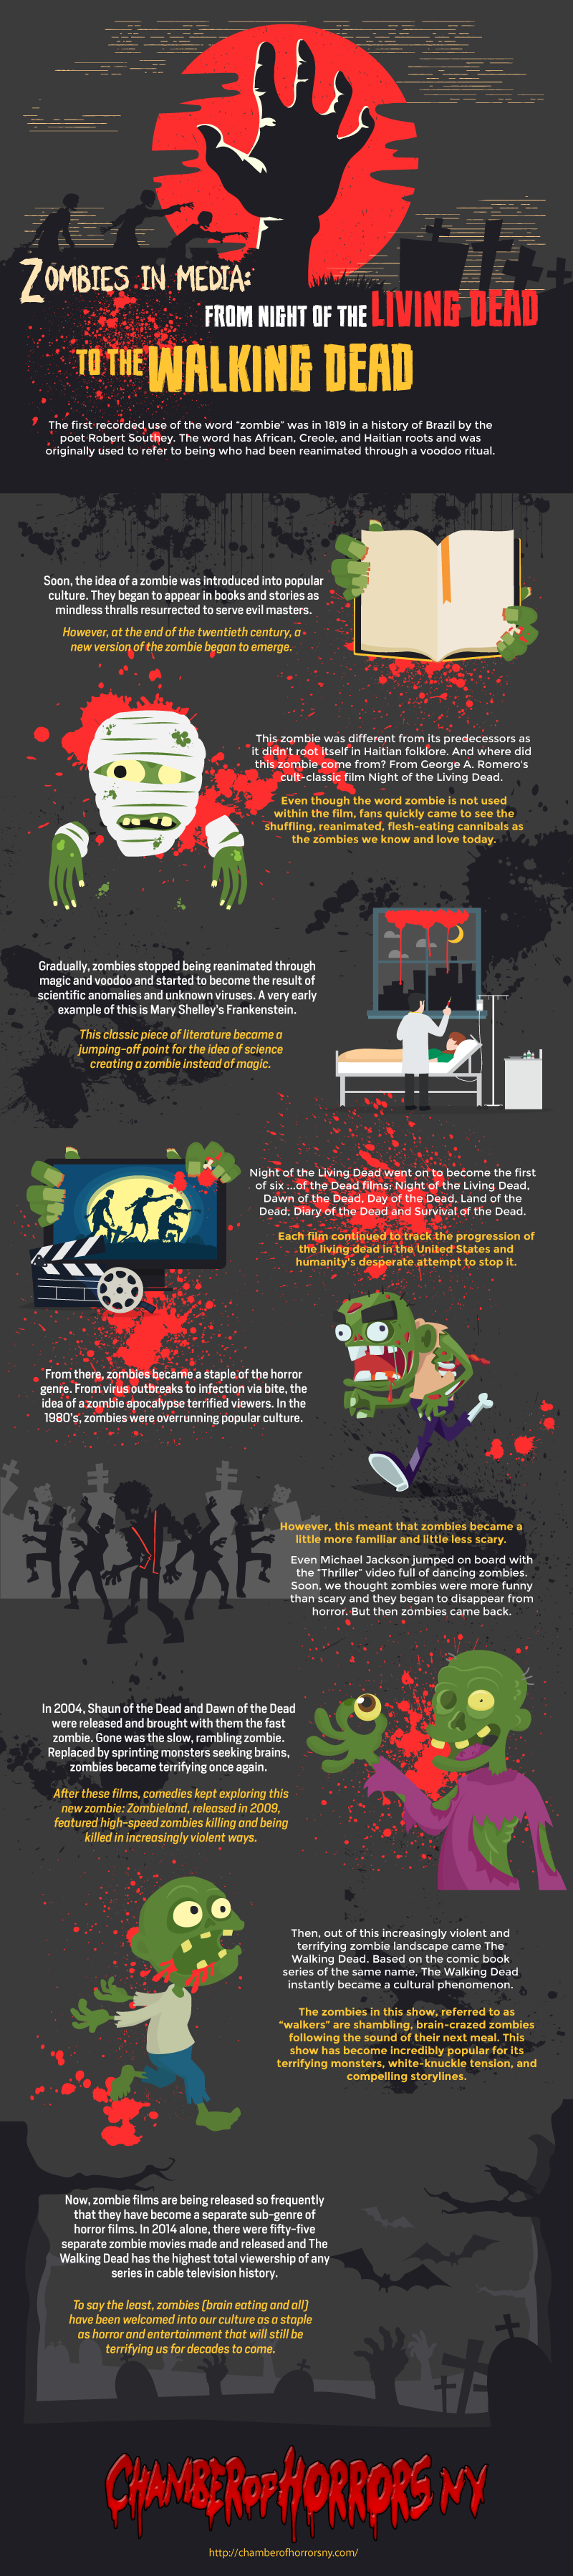 The Complete Evolution Of Zombies - Infographic